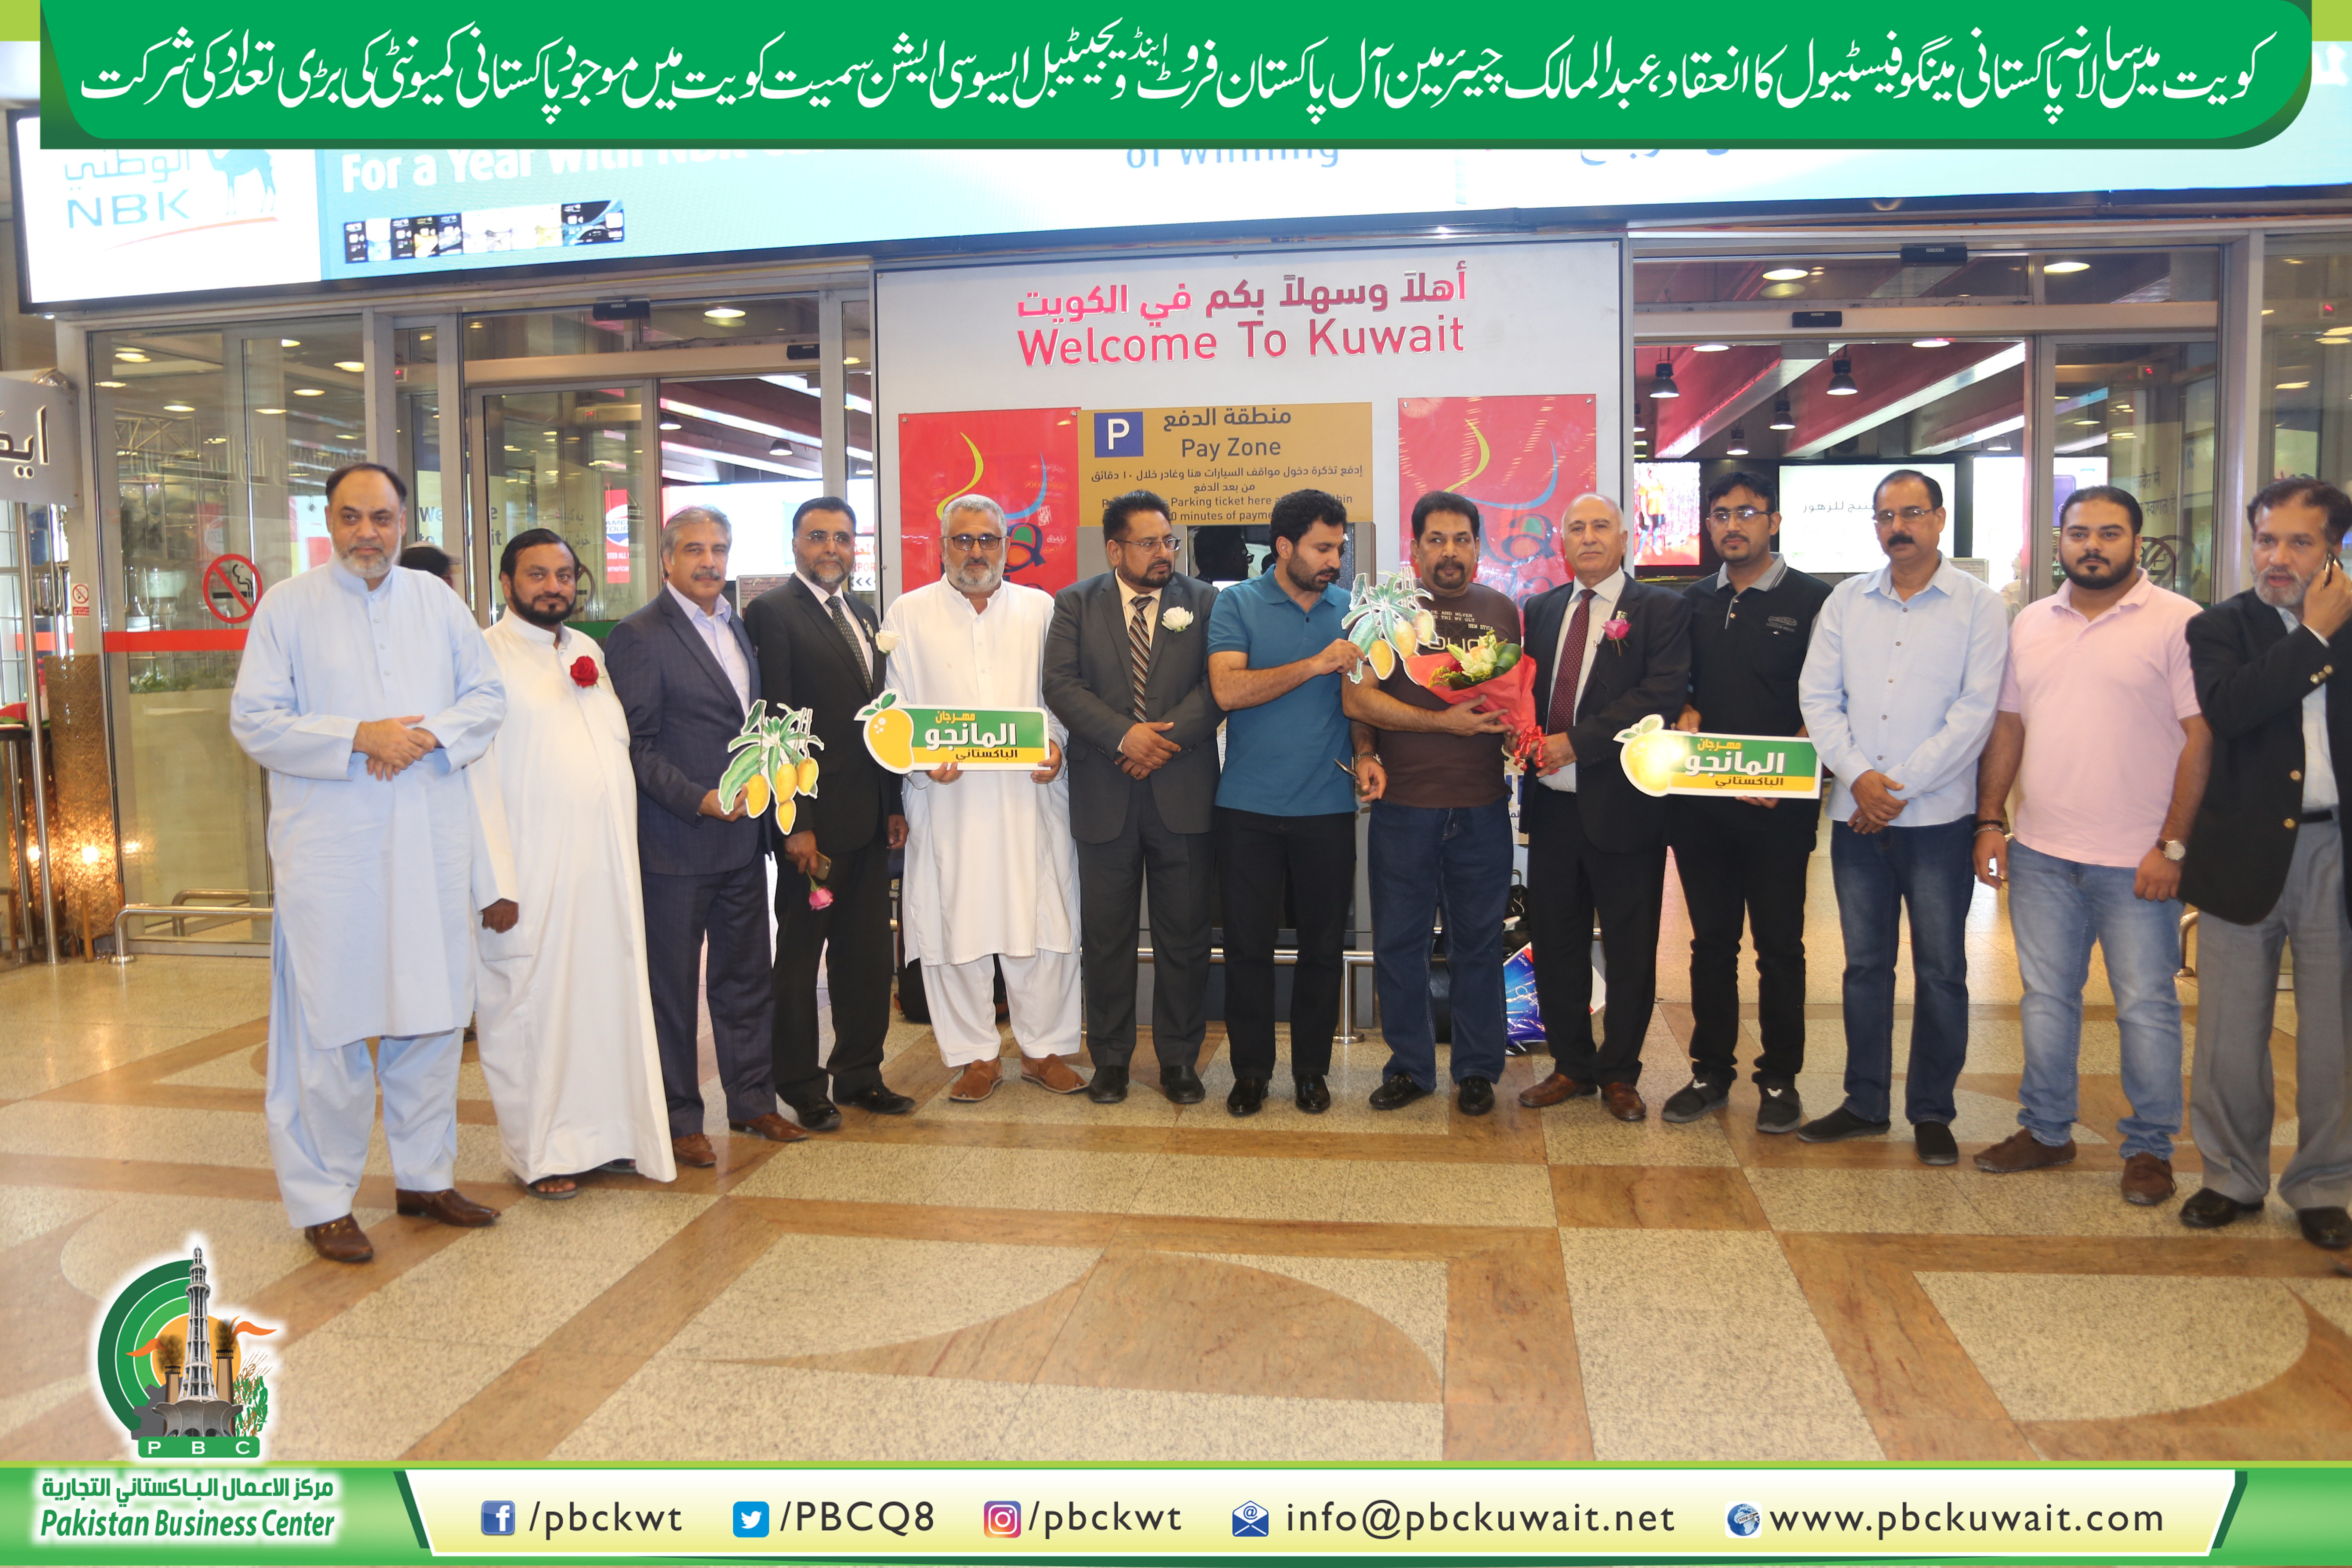 Warmly welcome for the delegation of Pakistan Fruit and Vegetable at Kuwait Airport.